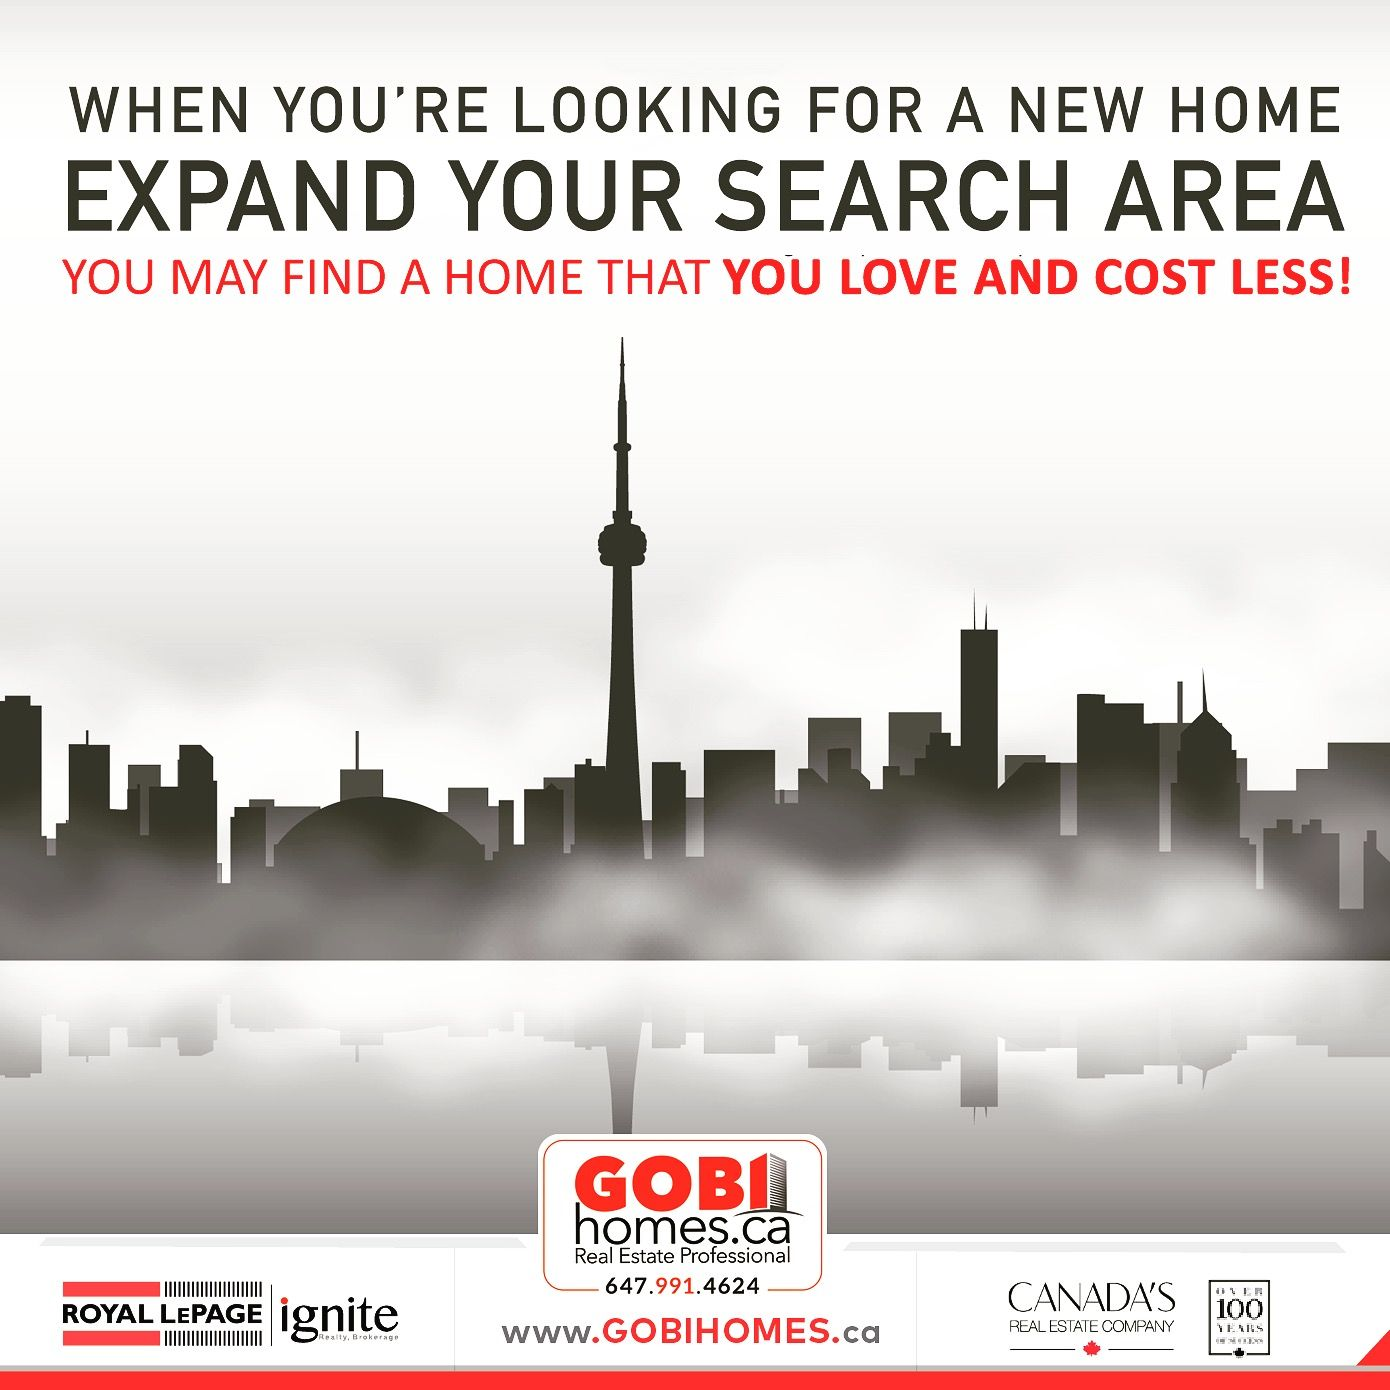 When Youu0027re Looking For A New Home Expand Your Search Area, You May Find A  Home That You Love And Cost Less! Please Call Or Text Today At ☎  647.991.4624 ...